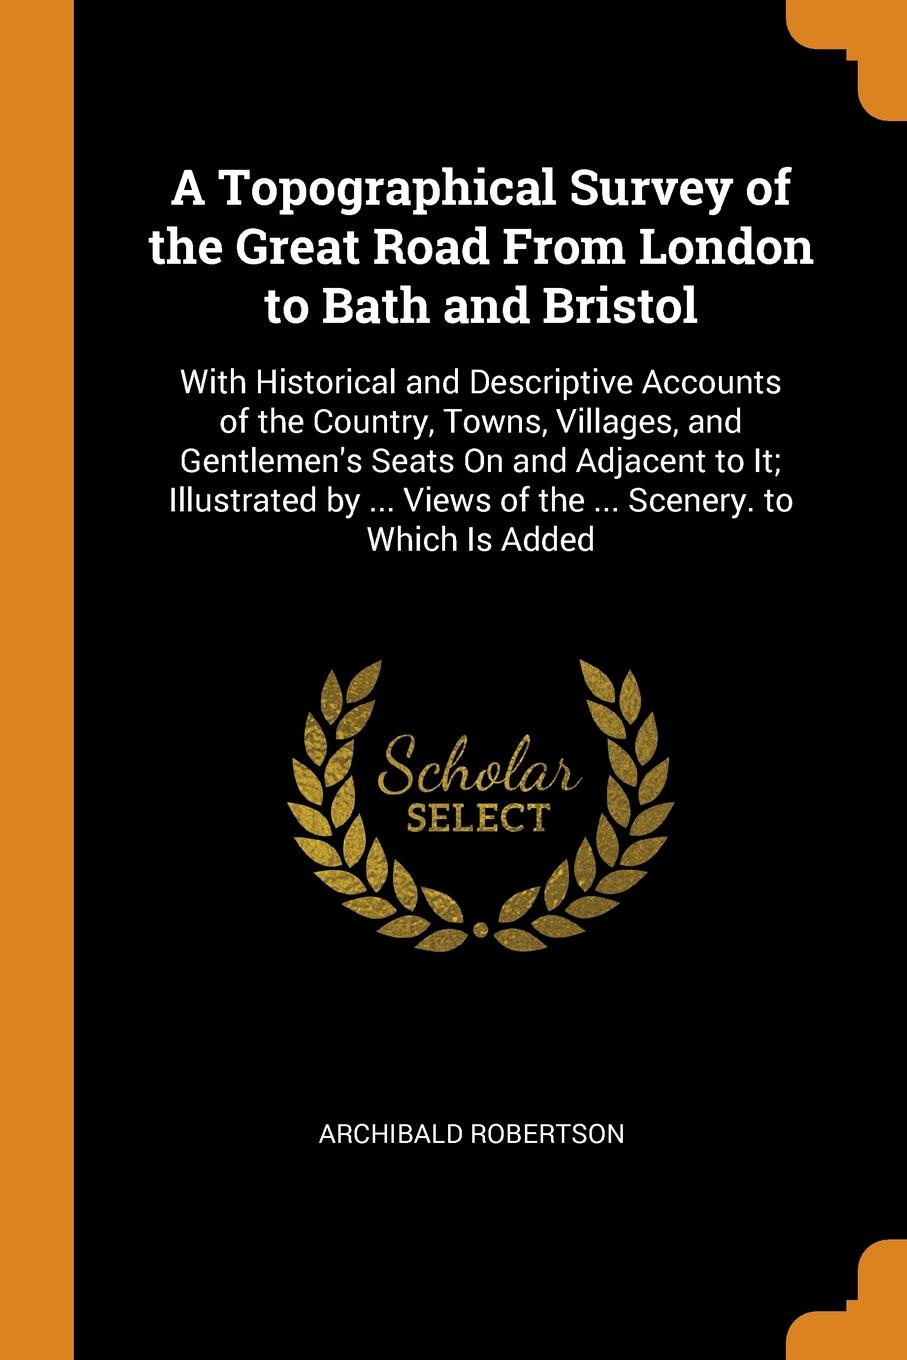 "A Topographical Survey of the Great Road From London to Bath and Bristol. With Historical and Descriptive Accounts of the Country, Towns, Villages, and Gentlemen's Seats On and Adjacent to It; Illustrated by ... Views of the ... Scenery. to Which ... Книга""A Topographical Survey of the Great Road From London..."